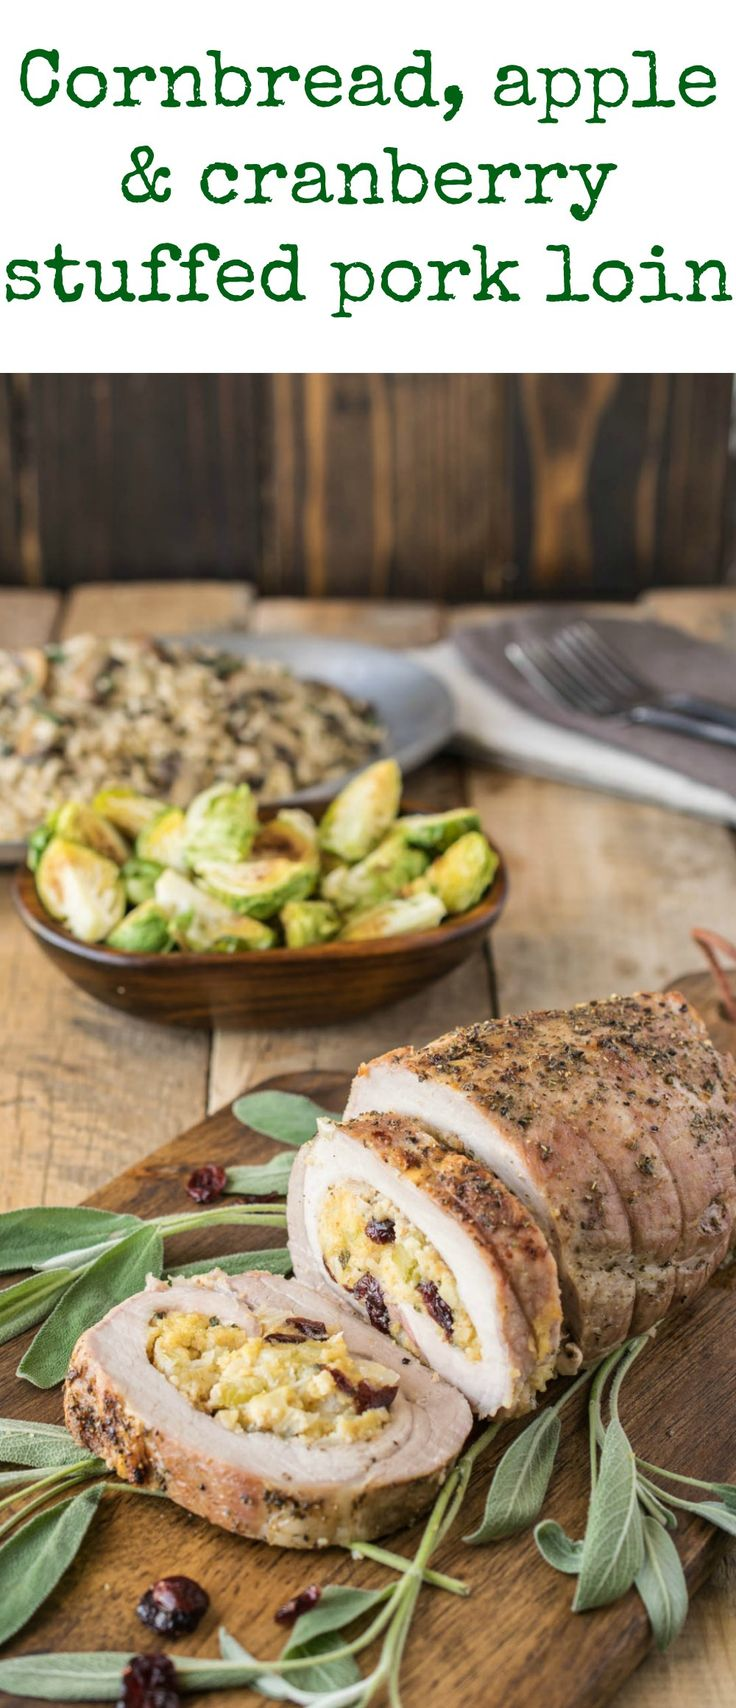 Cornbread, apple & cranberry stuffed pork loin is the winner of any dinner table with all the favorite ingredients of the season. Pork loin is sliced and opened flat, then stuffed with apple, dried cranberries, cornbread and sage, then rolled and roasted.